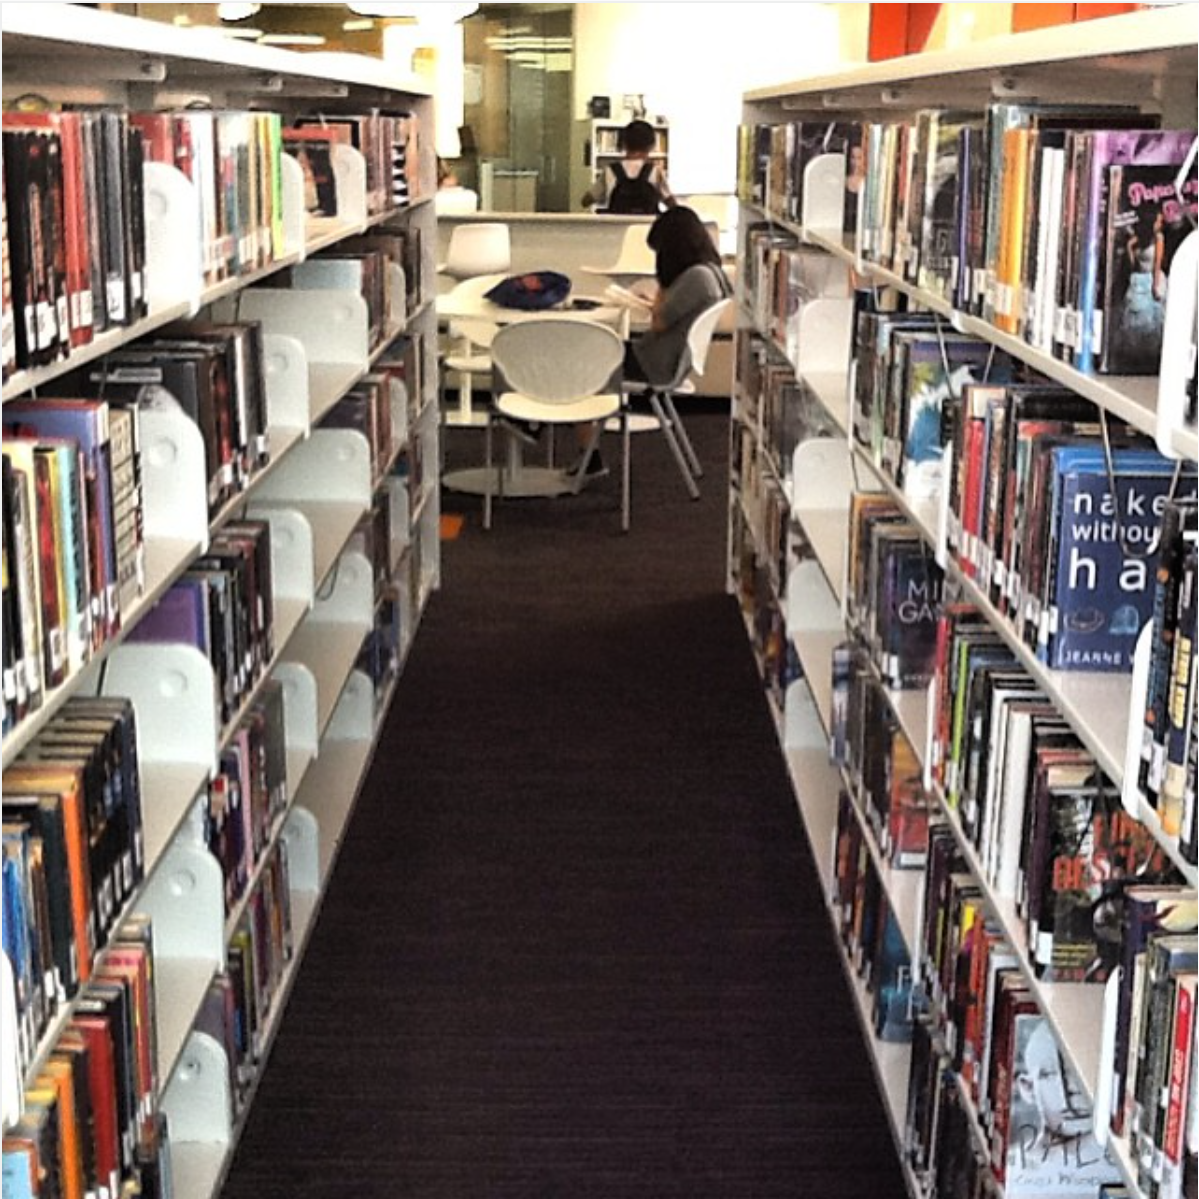 Teens reading at table and browsing the shelves through bookstacks.